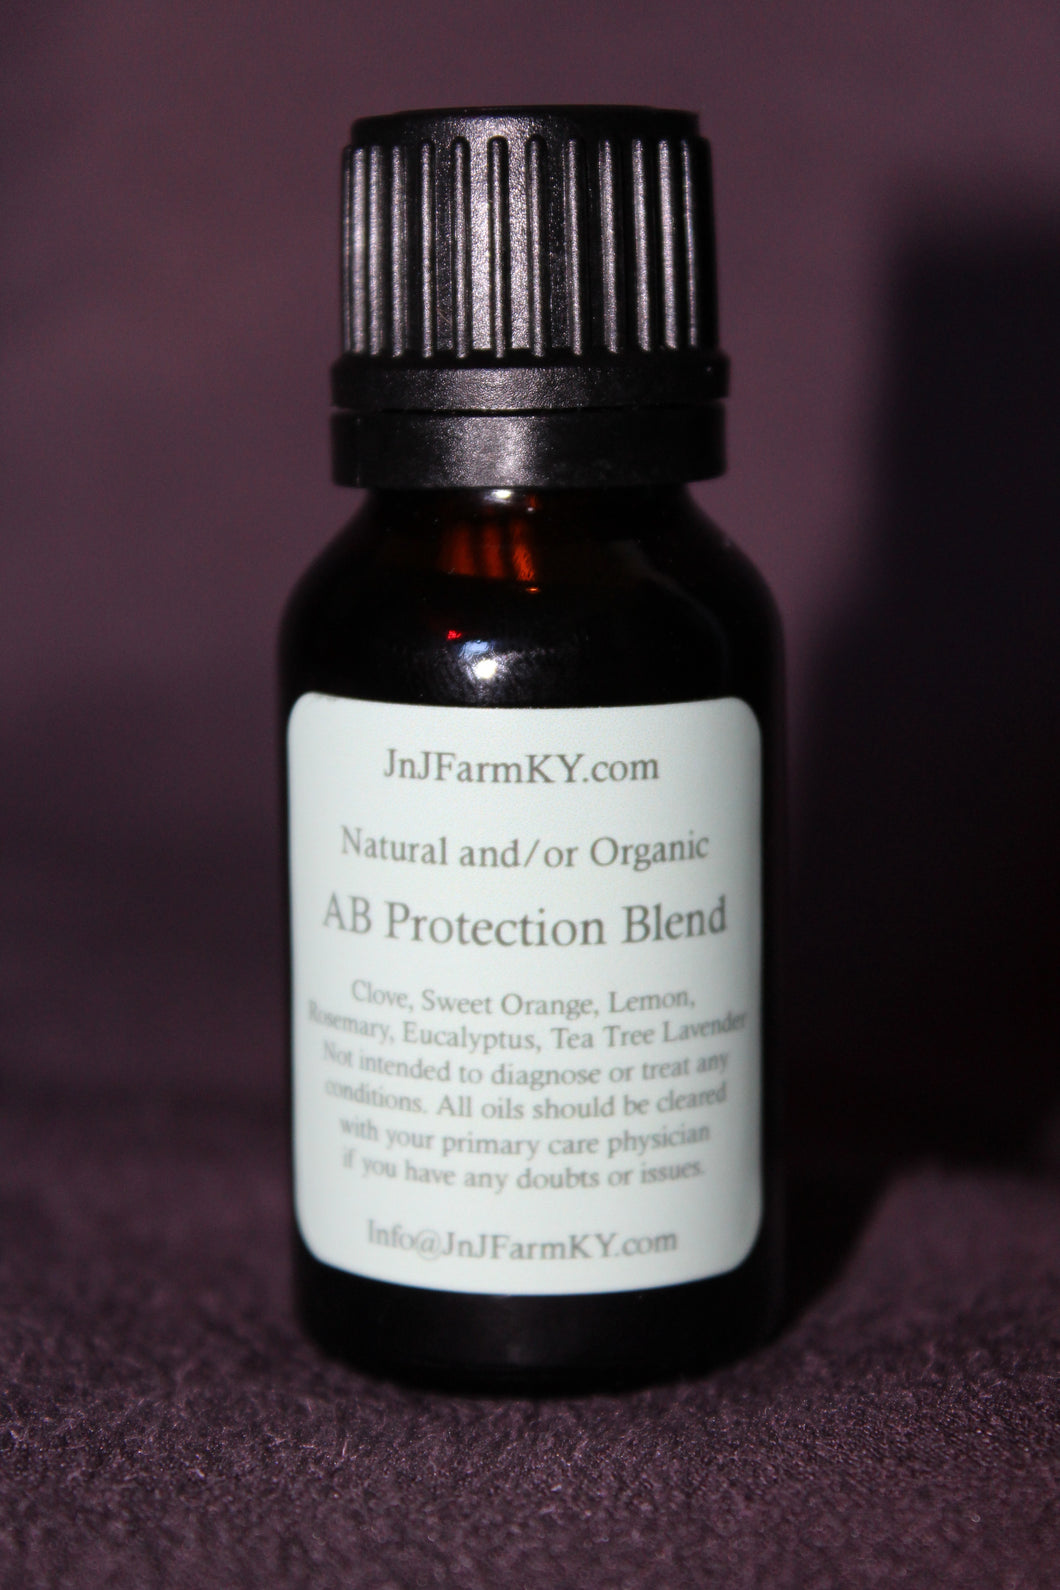 AB Protection Blend